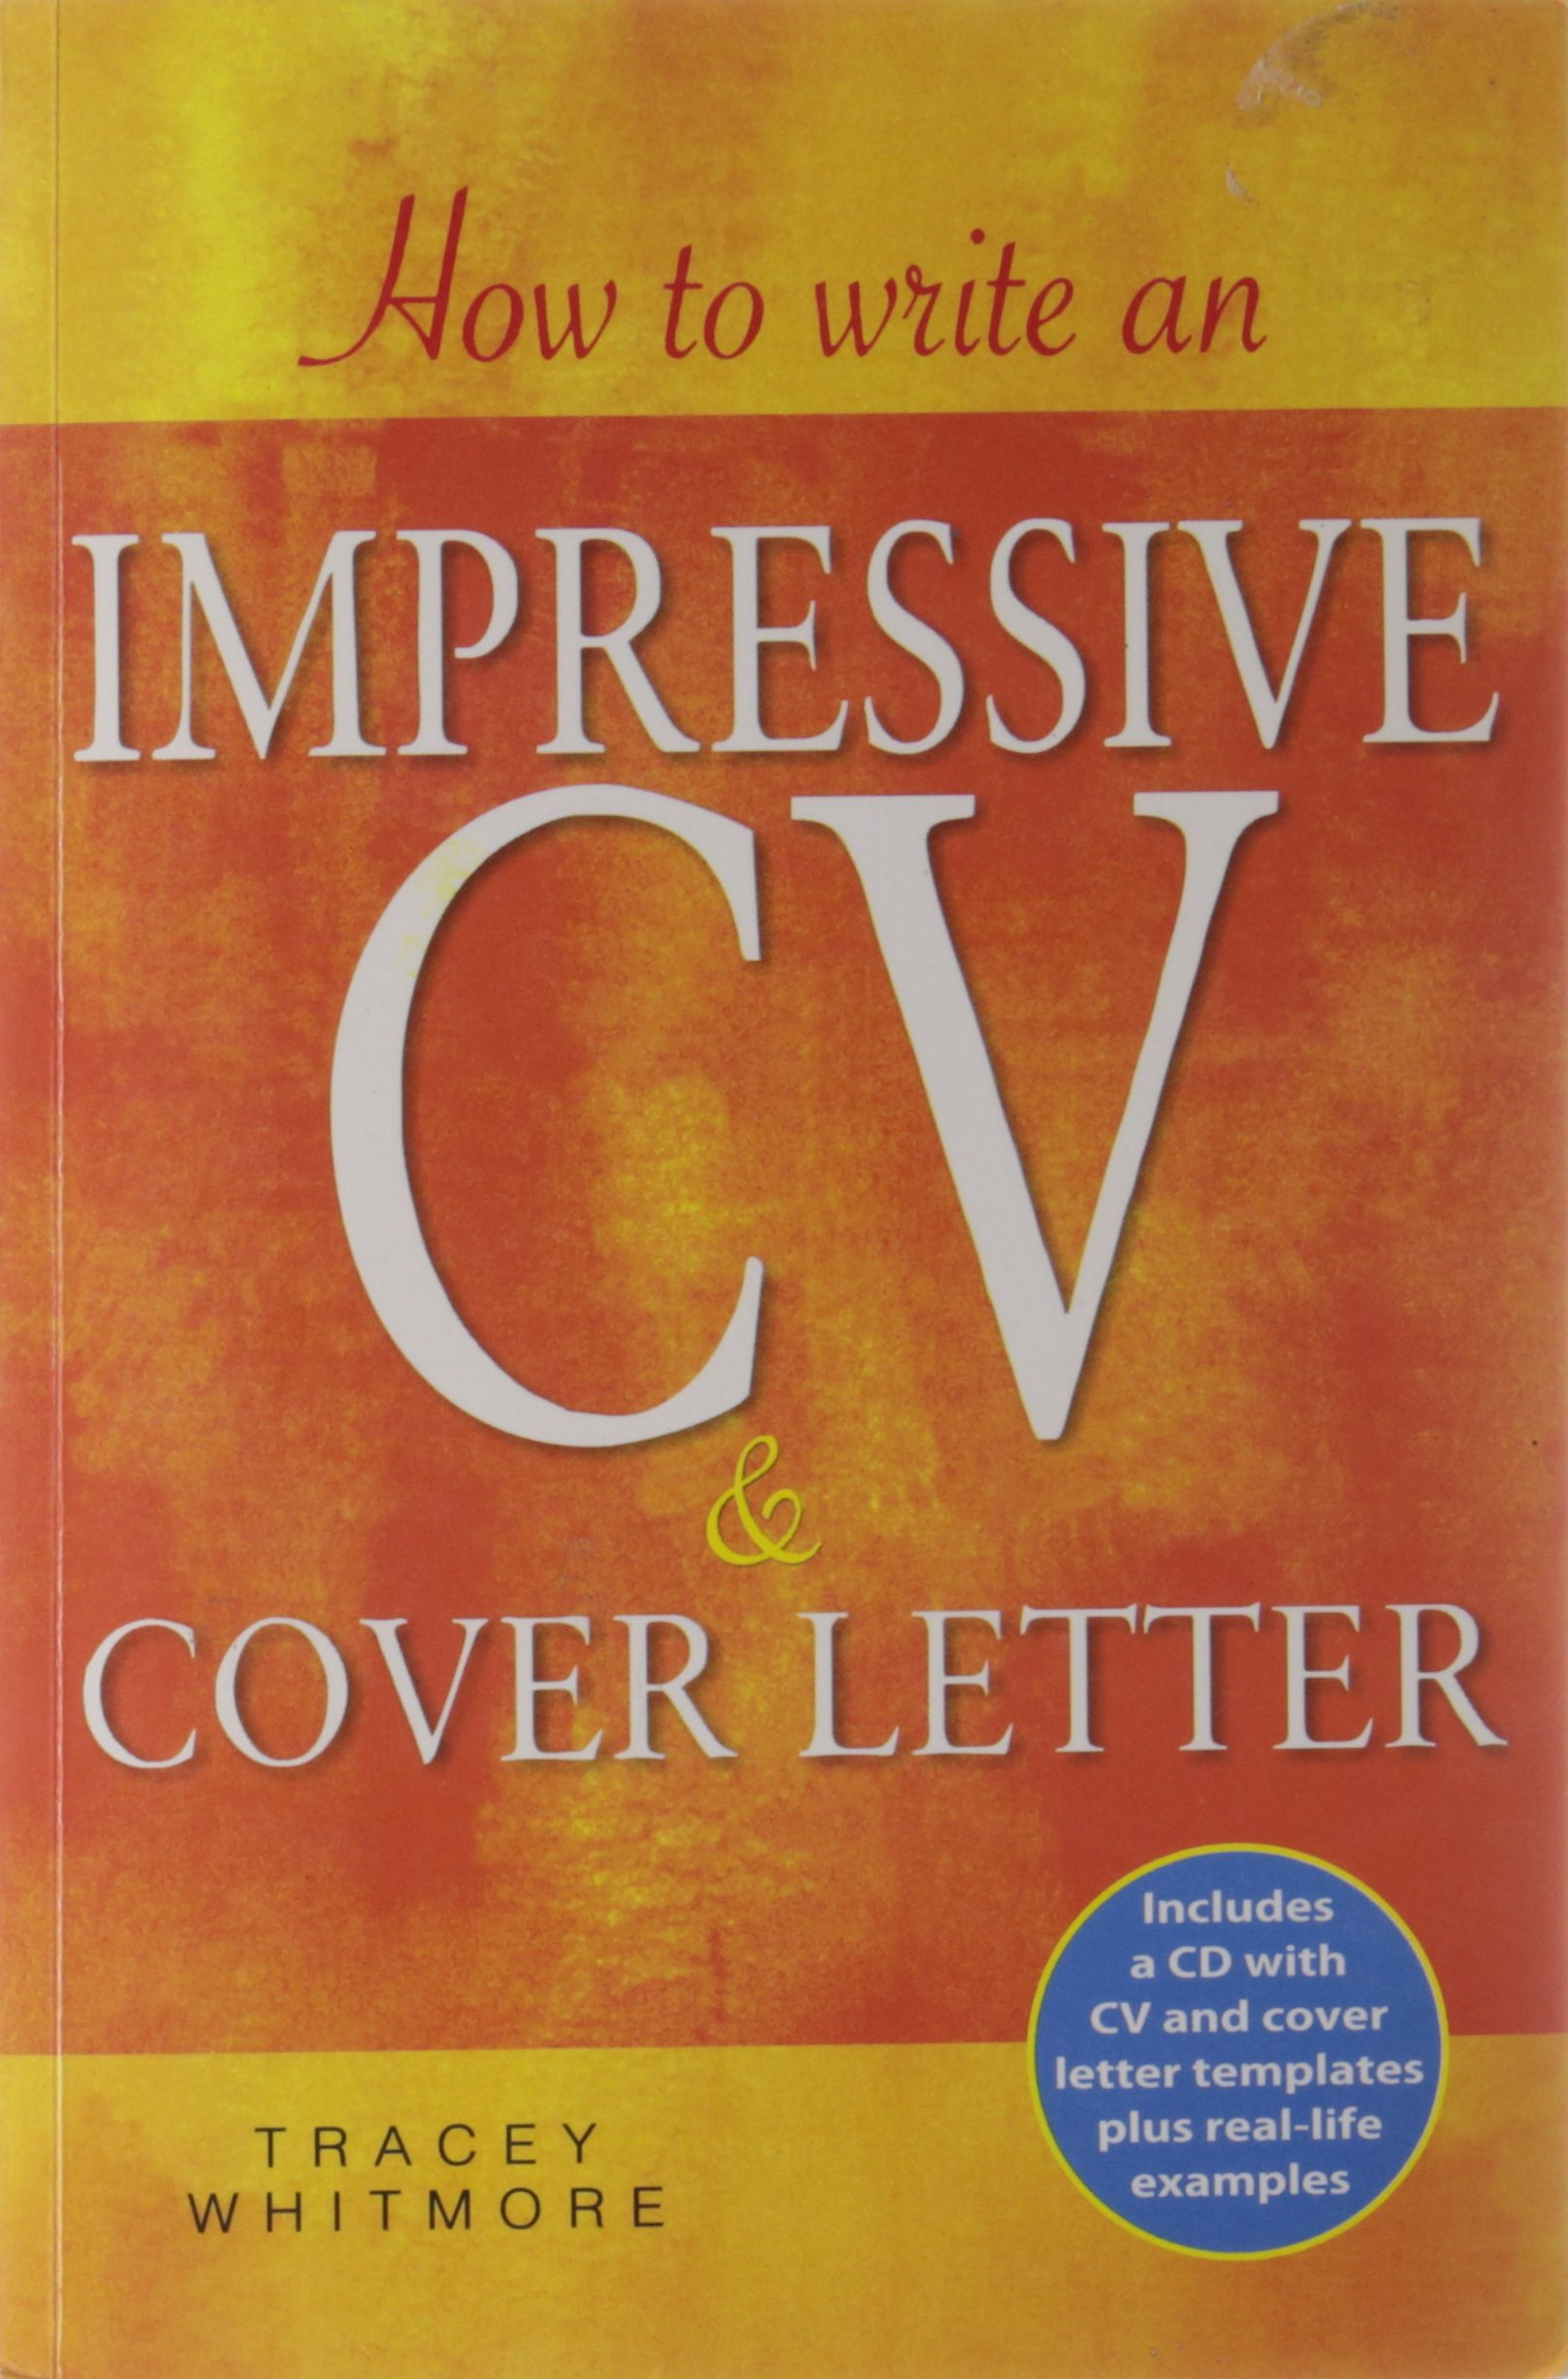 how to write an impressive cv and cover letter tracey whitmore